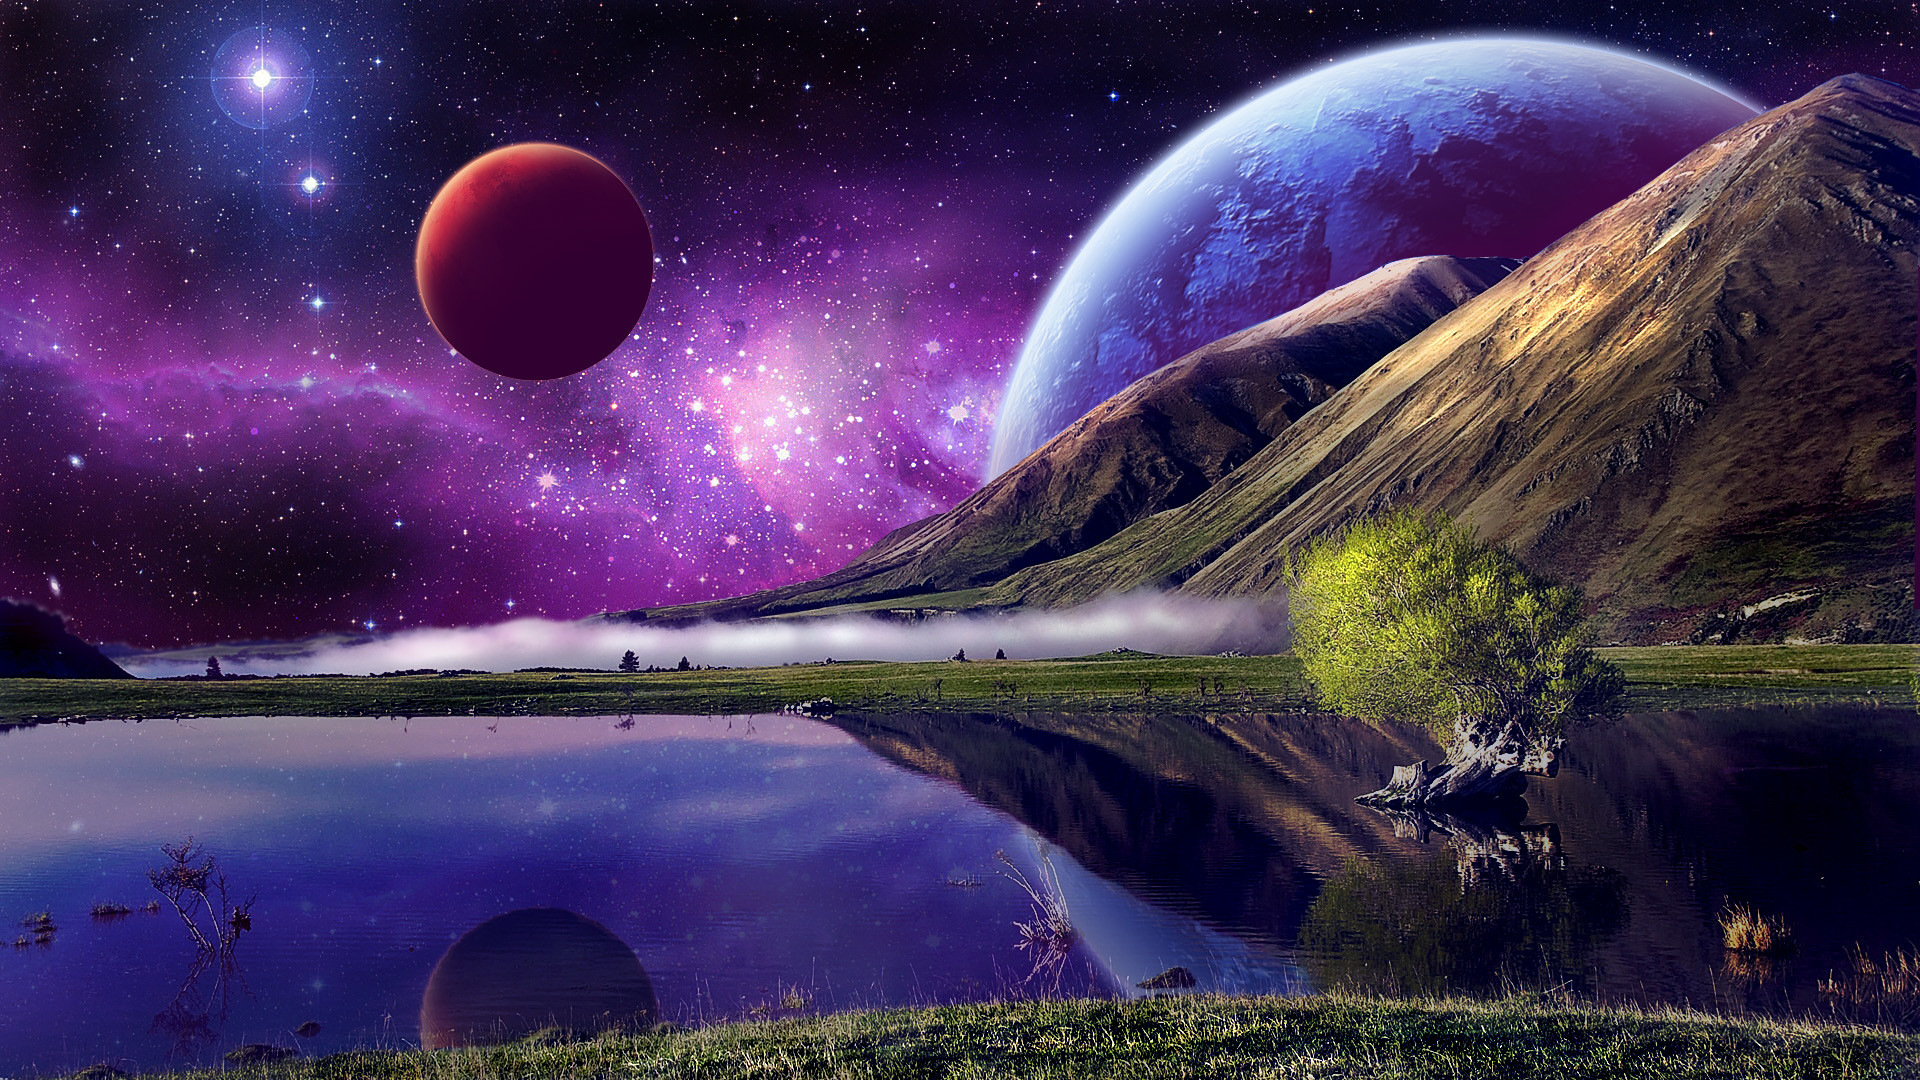 1920x1080 Wallpaperwiki 1080p Space Background Free Download PIC